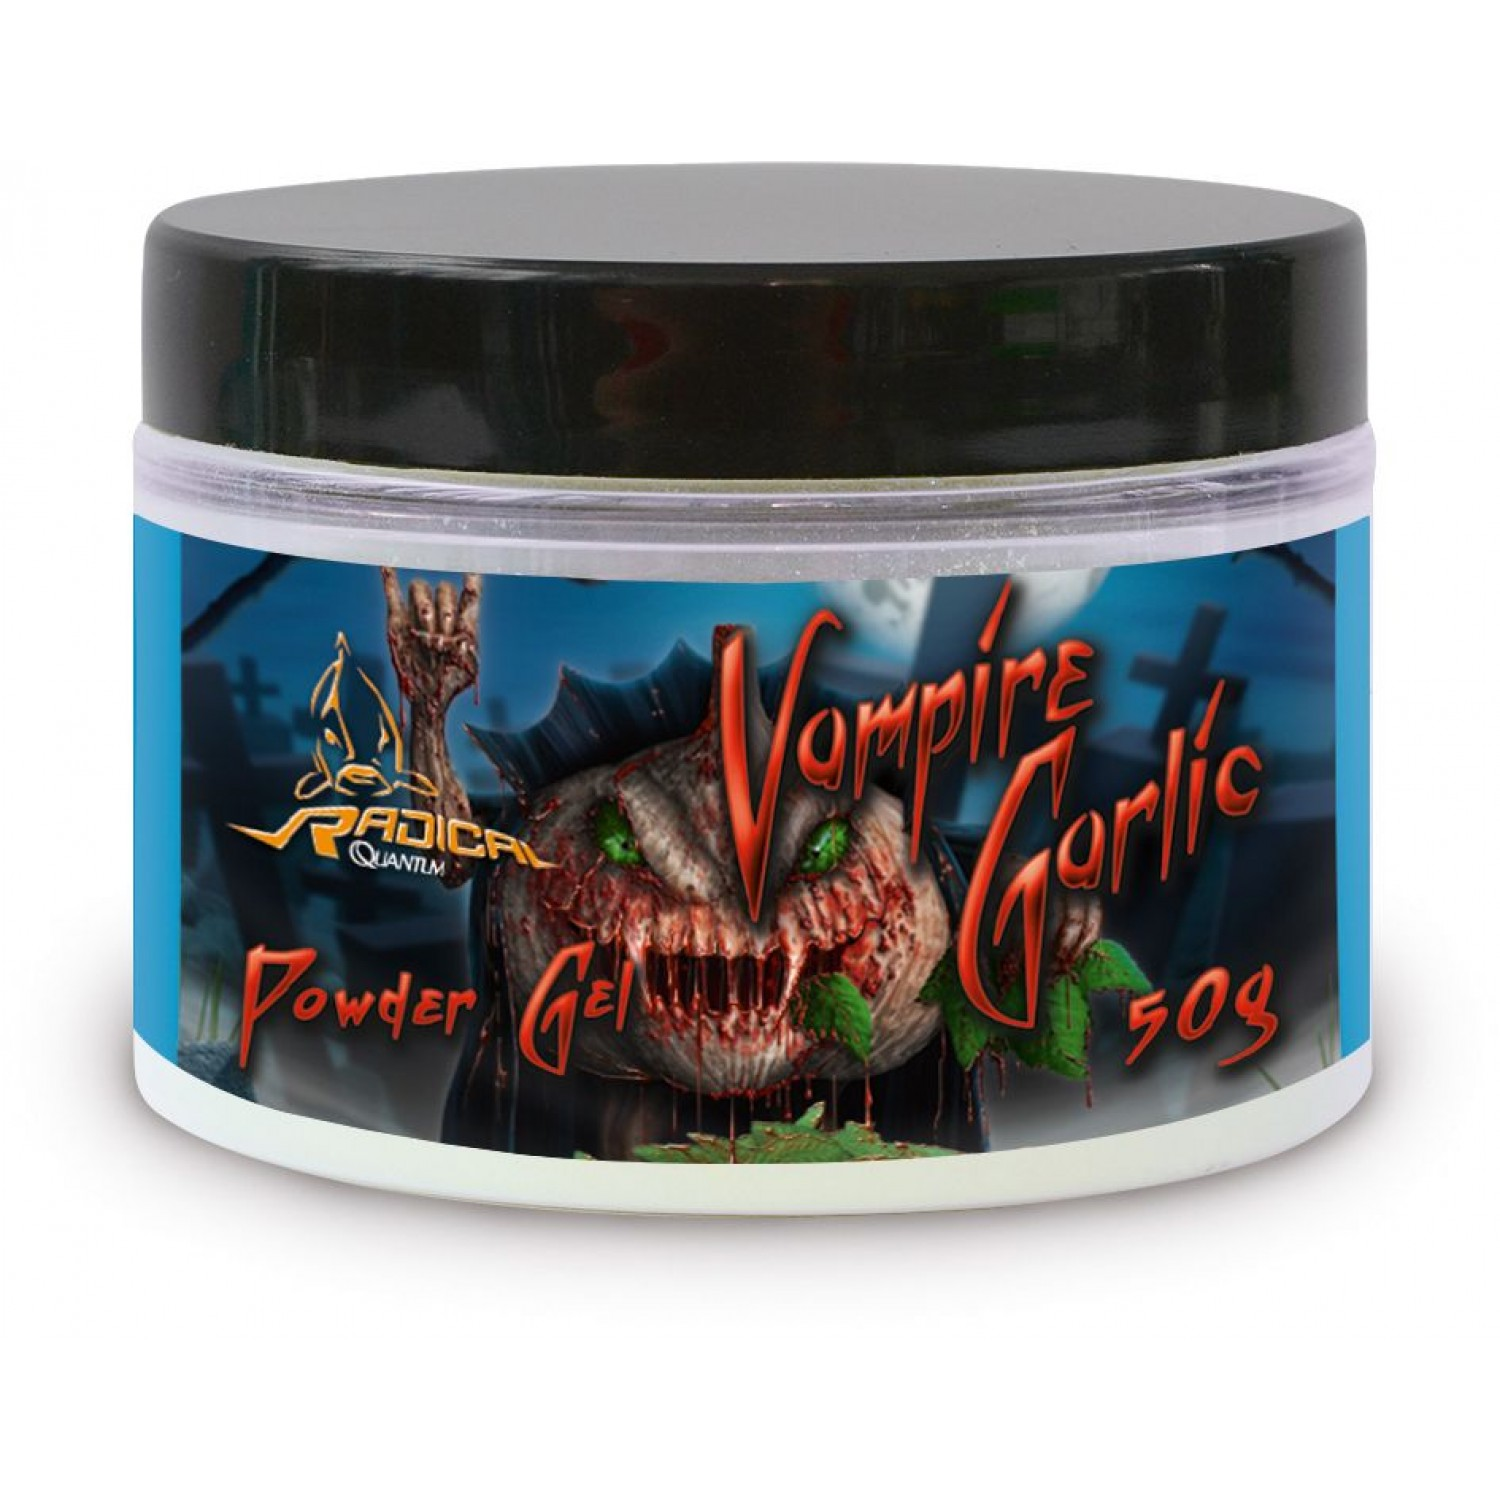 QUANTUM Vampire Garlic Neon Powder 50g